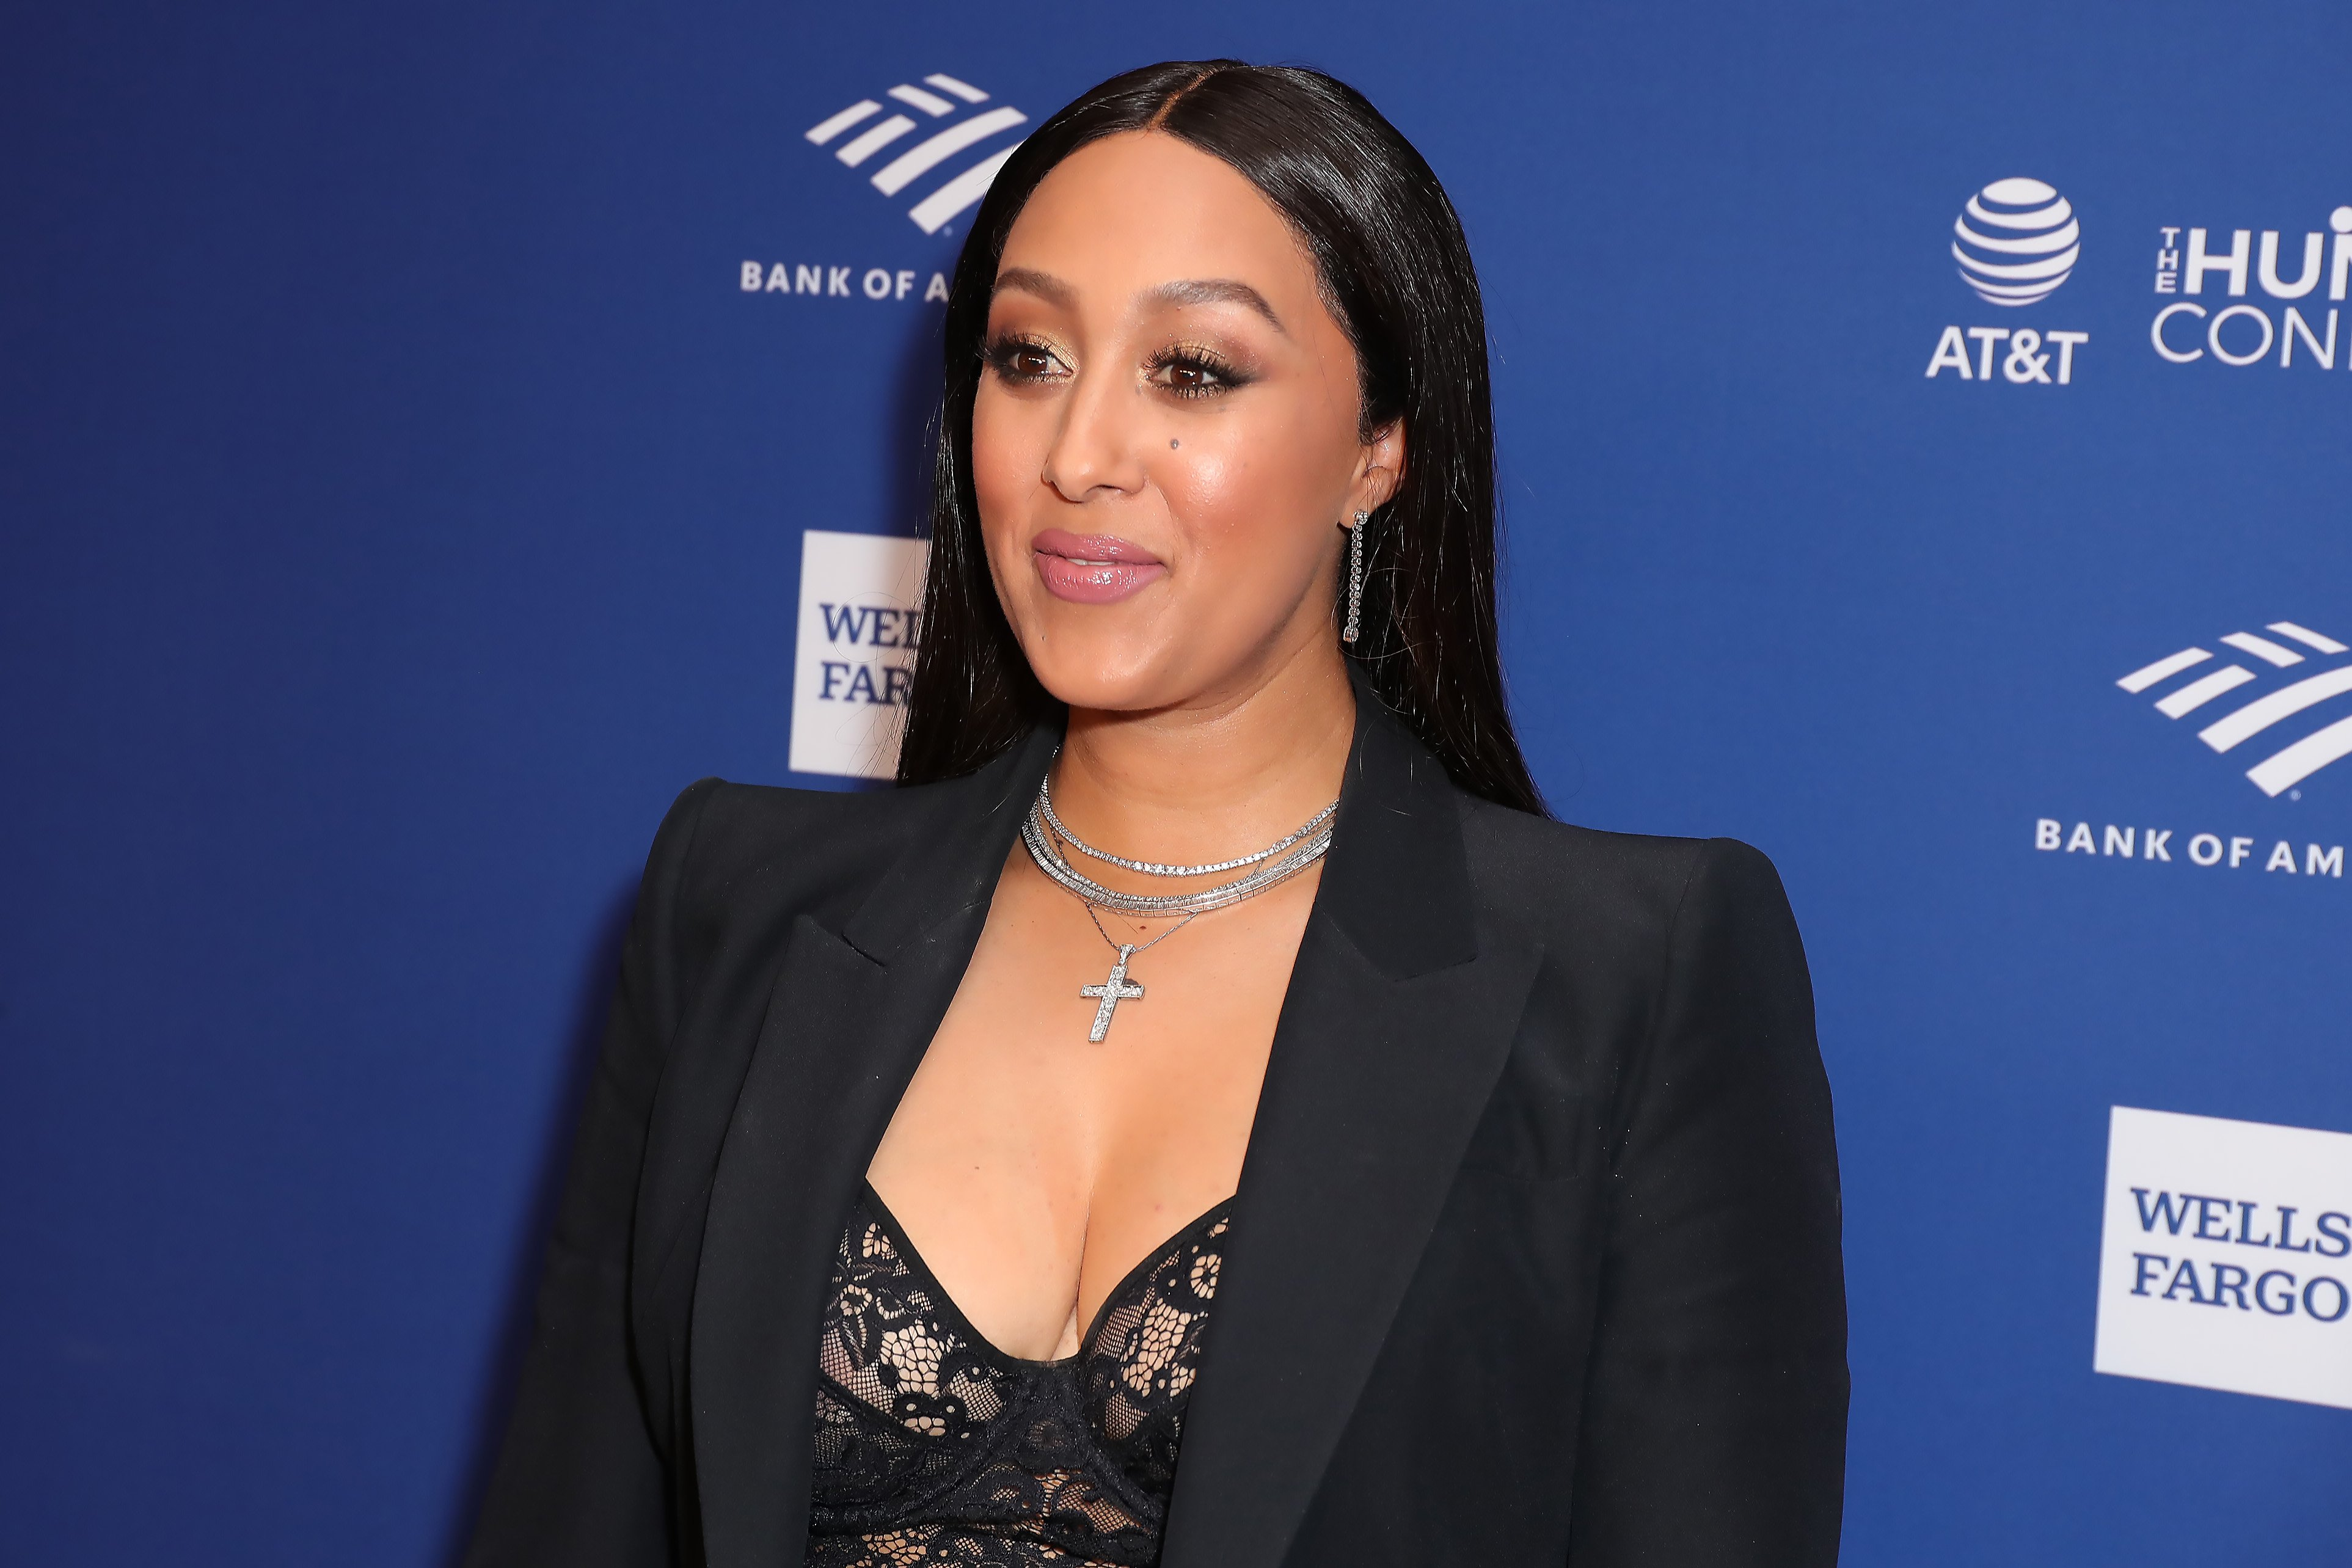 TV show host Tamera Mowry attends the non-televised 51st NAACP Image Awards Awards Dinner on February 21, 2020, in Hollywood, California. | Photo: Getty Images